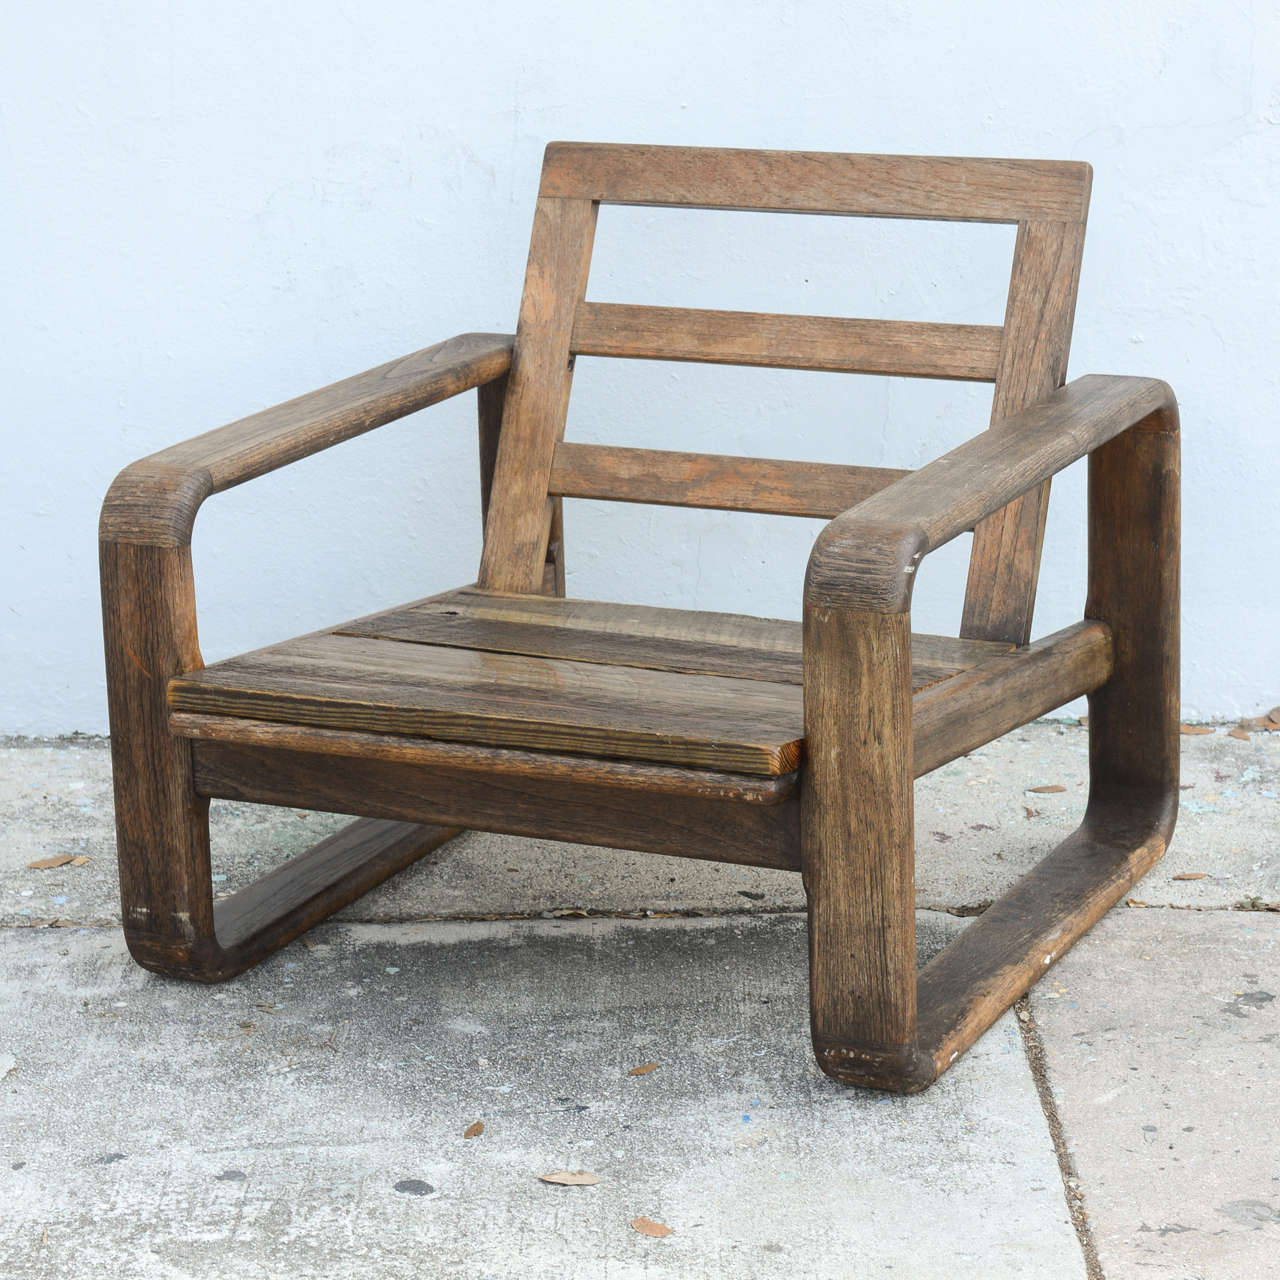 Beautiful Vintage Teak And Reclaimed Wood Chairs, 1950s, USA 3